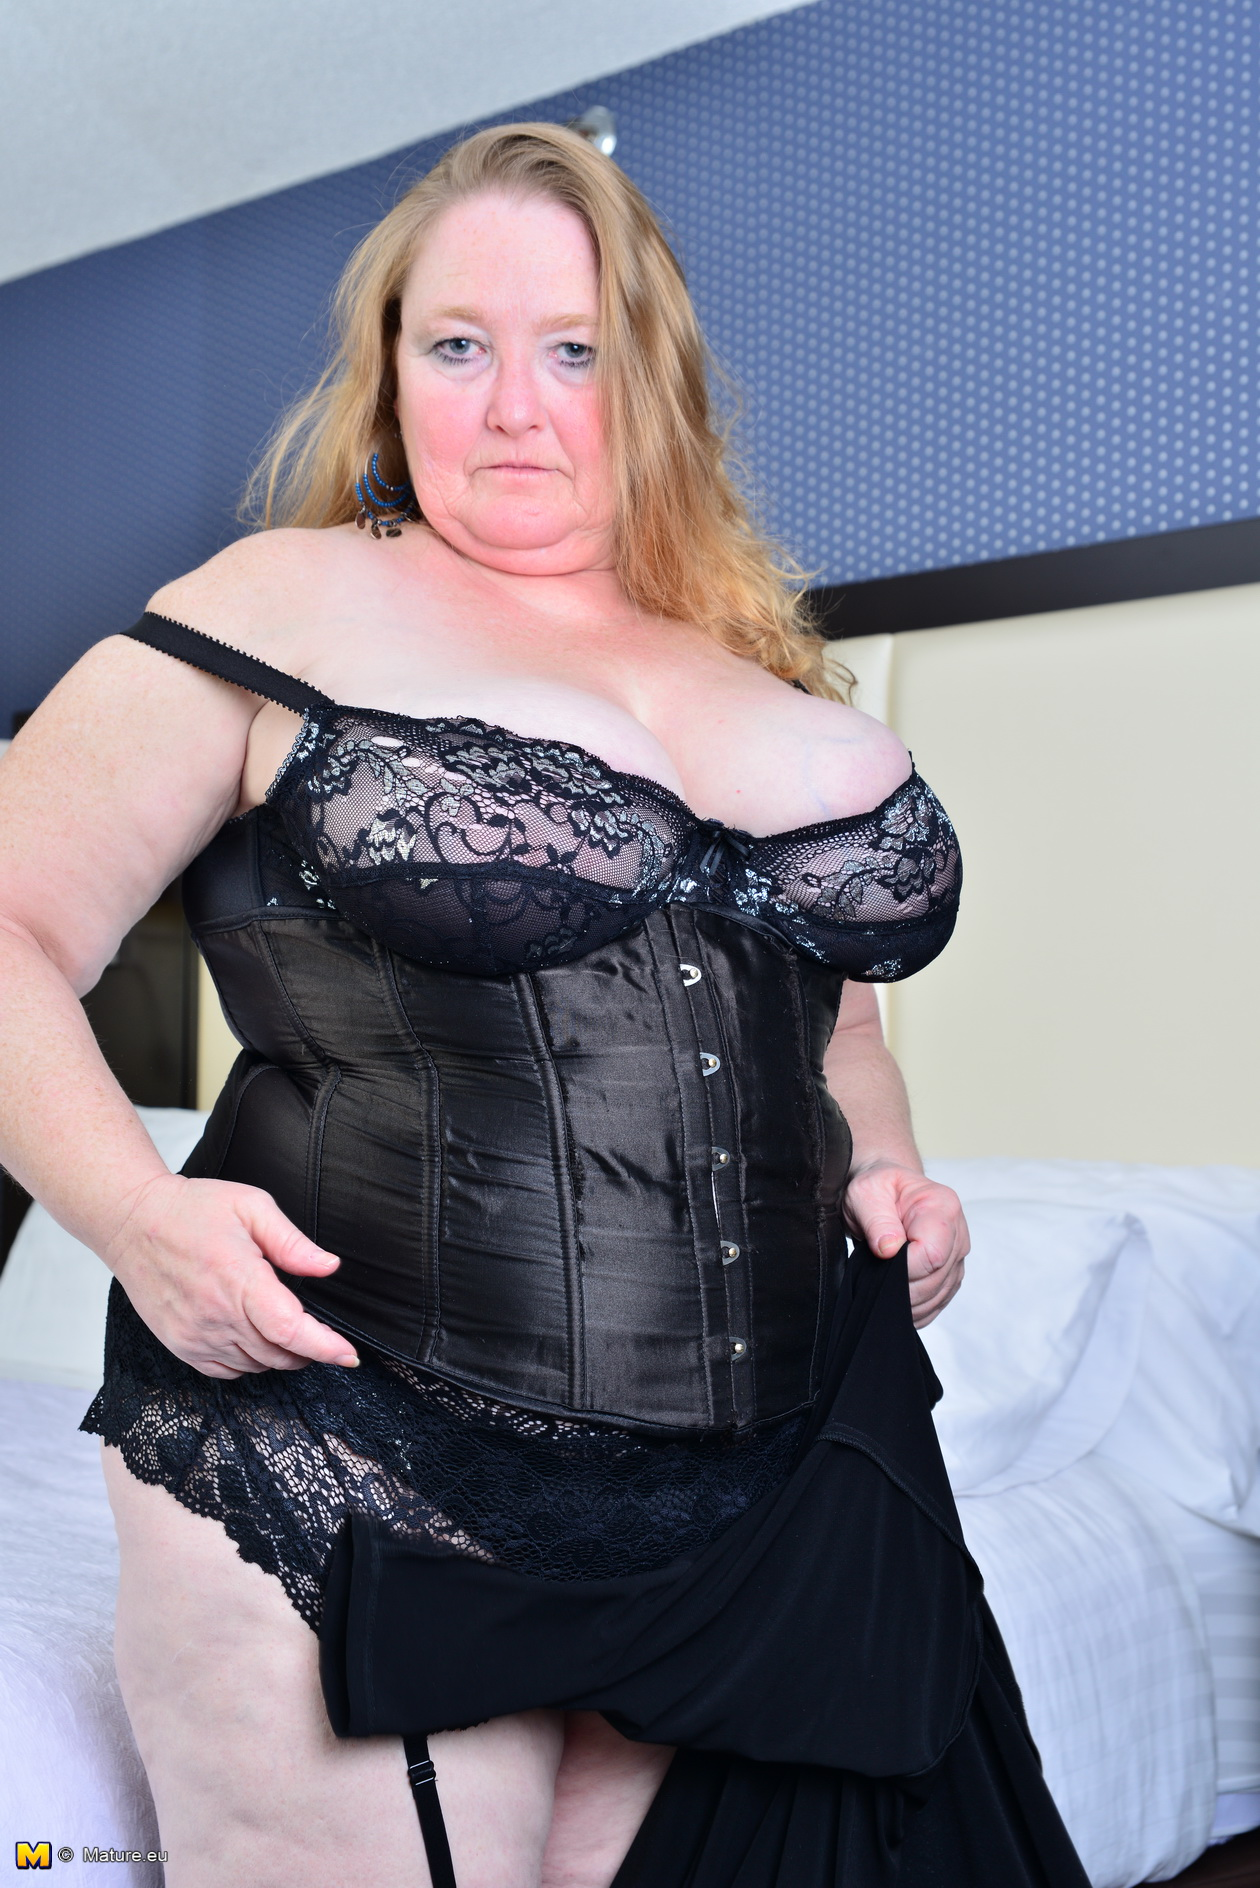 Bbw busty granny in stockings anal fuck